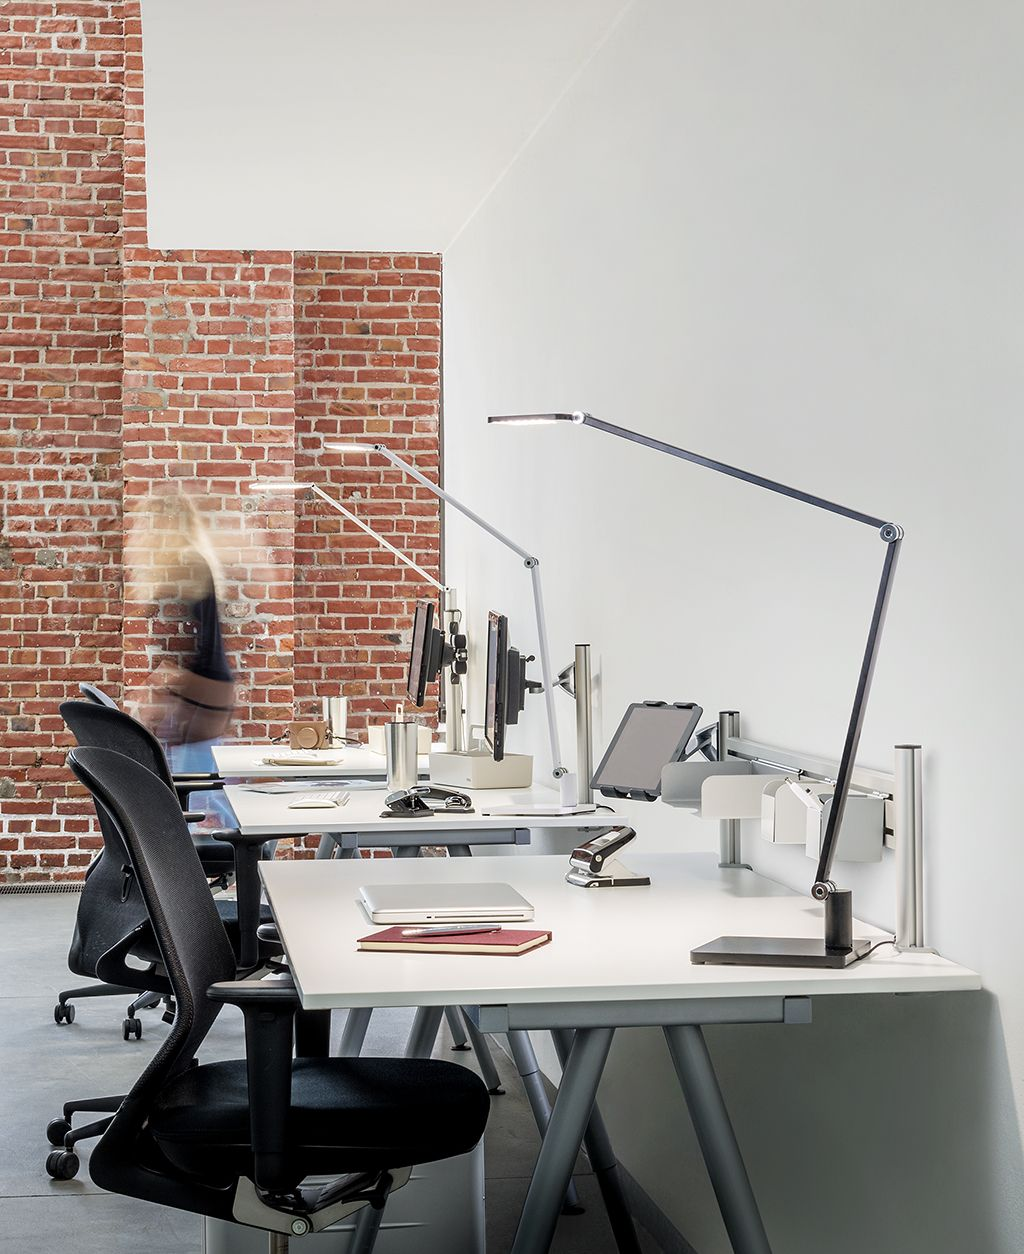 Attenzia Task Led Lighting From Novus Get Focused With 742 Lumens Of Clear White Light That Reduces Eye Strain And I Led Lights Office Design Office Lighting